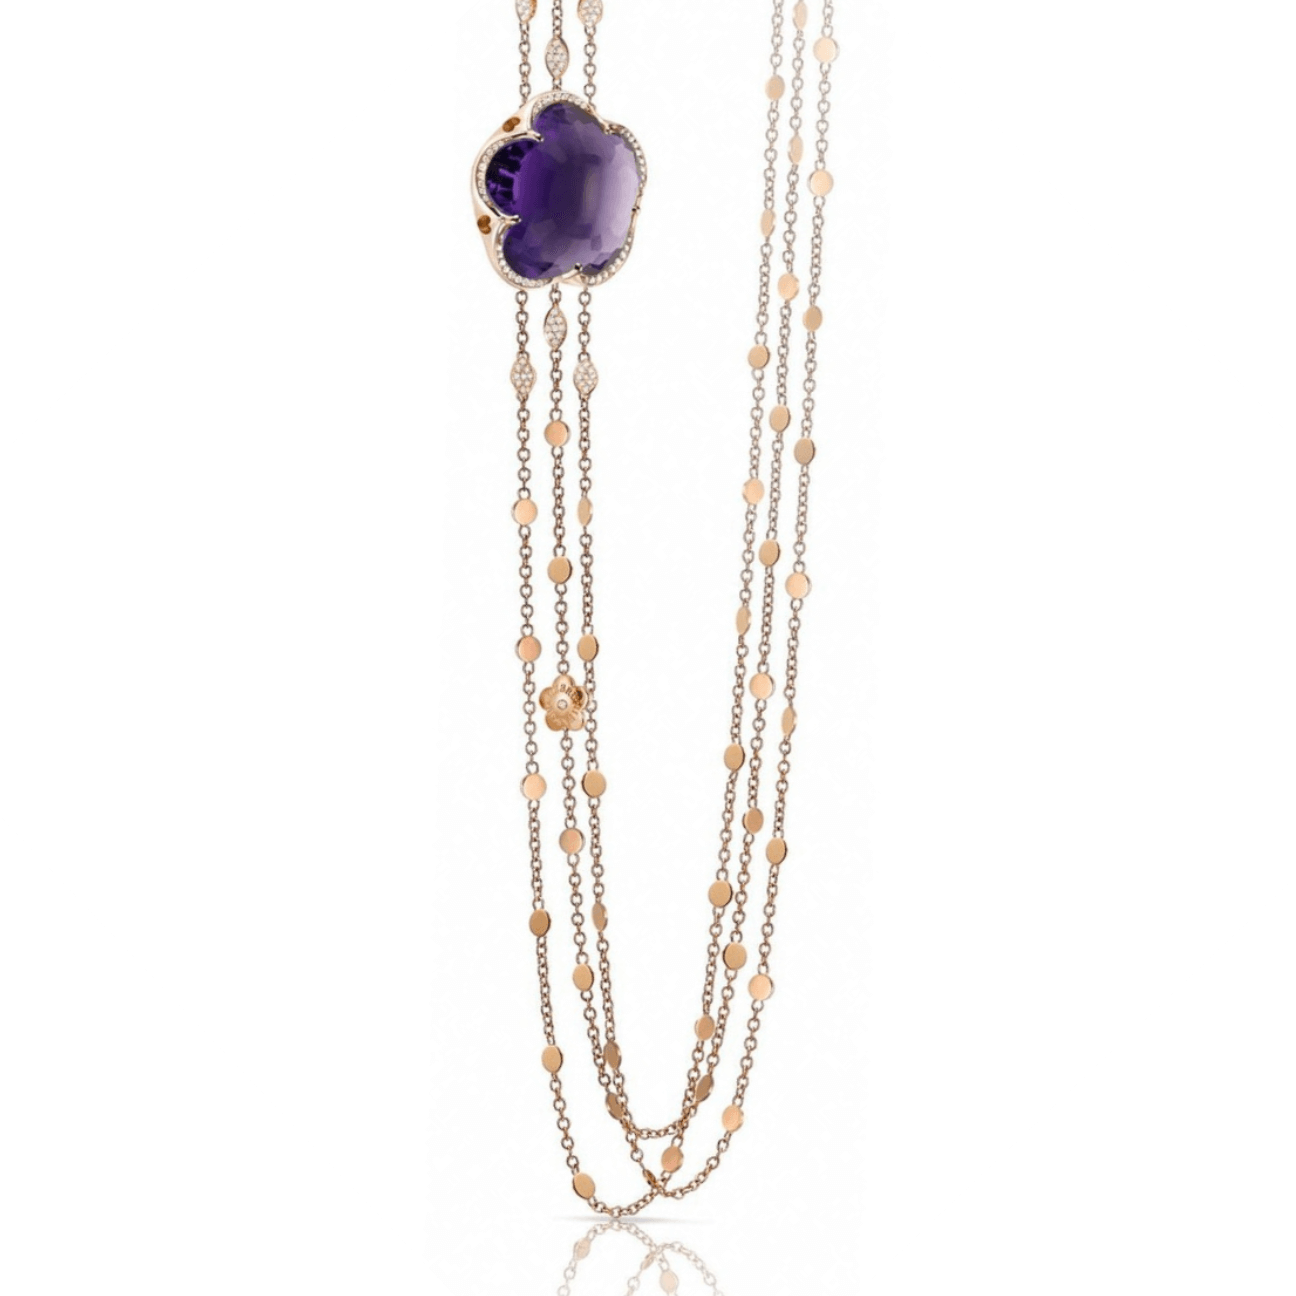 BON TON NECKLACE WITH DEEP VIOLET AMETHYST AND DIAMONDS 22mm